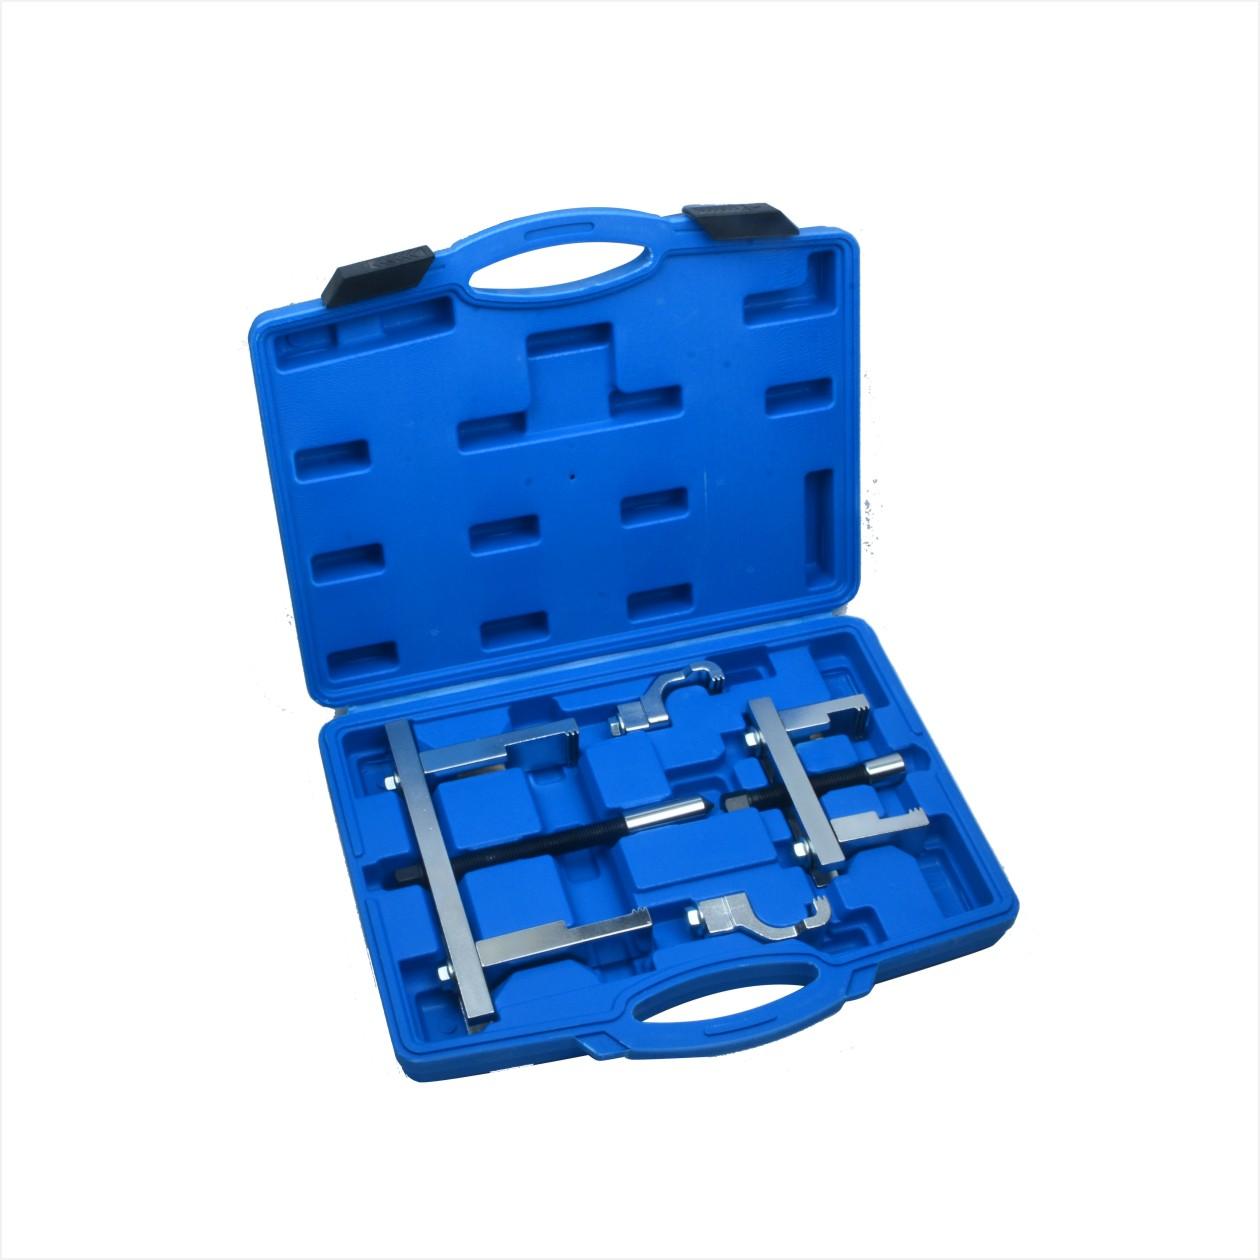 Universal Ribbed Auxiliary Drive Belt Pulley Puller Extractor Sets For A wide Variety Of Pulling Tasks все цены